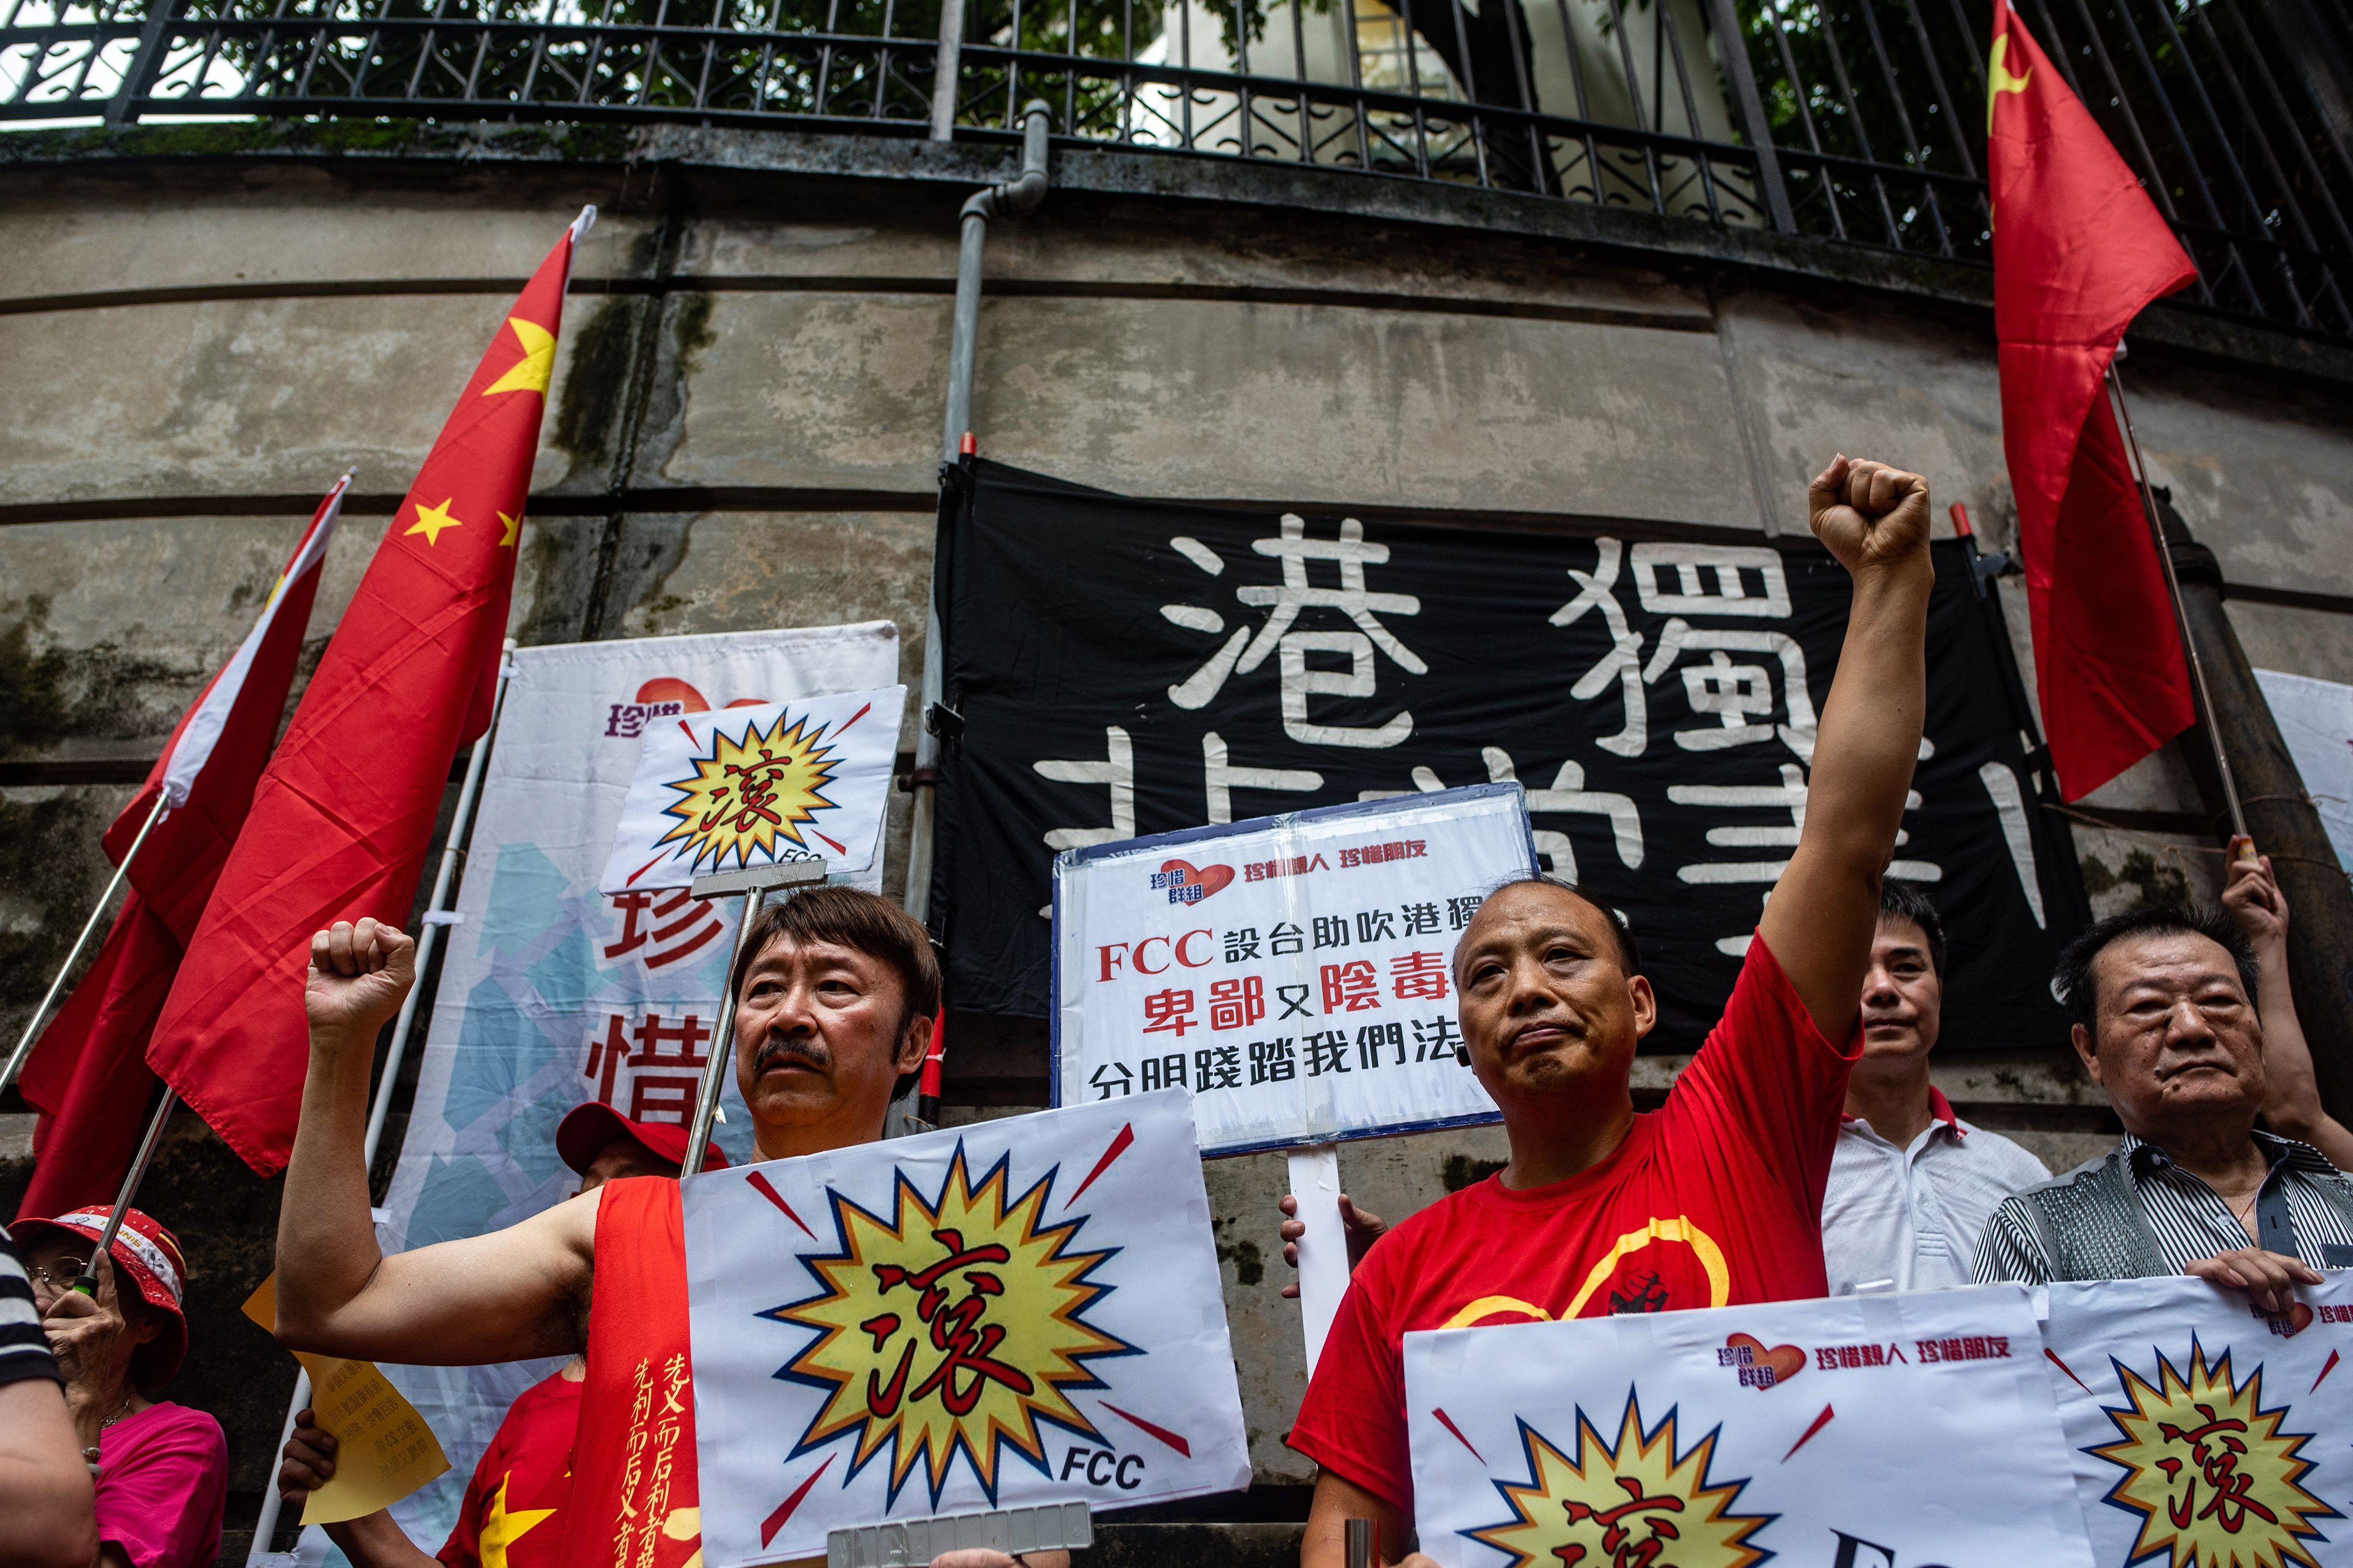 Pro-Beijing protesters chant slogans against pro-independence activist Andy Chan, who is scheduled to make a speech at the Foreign Correspondents' Club (FCC), in Hong Kong on August 14, 2018.